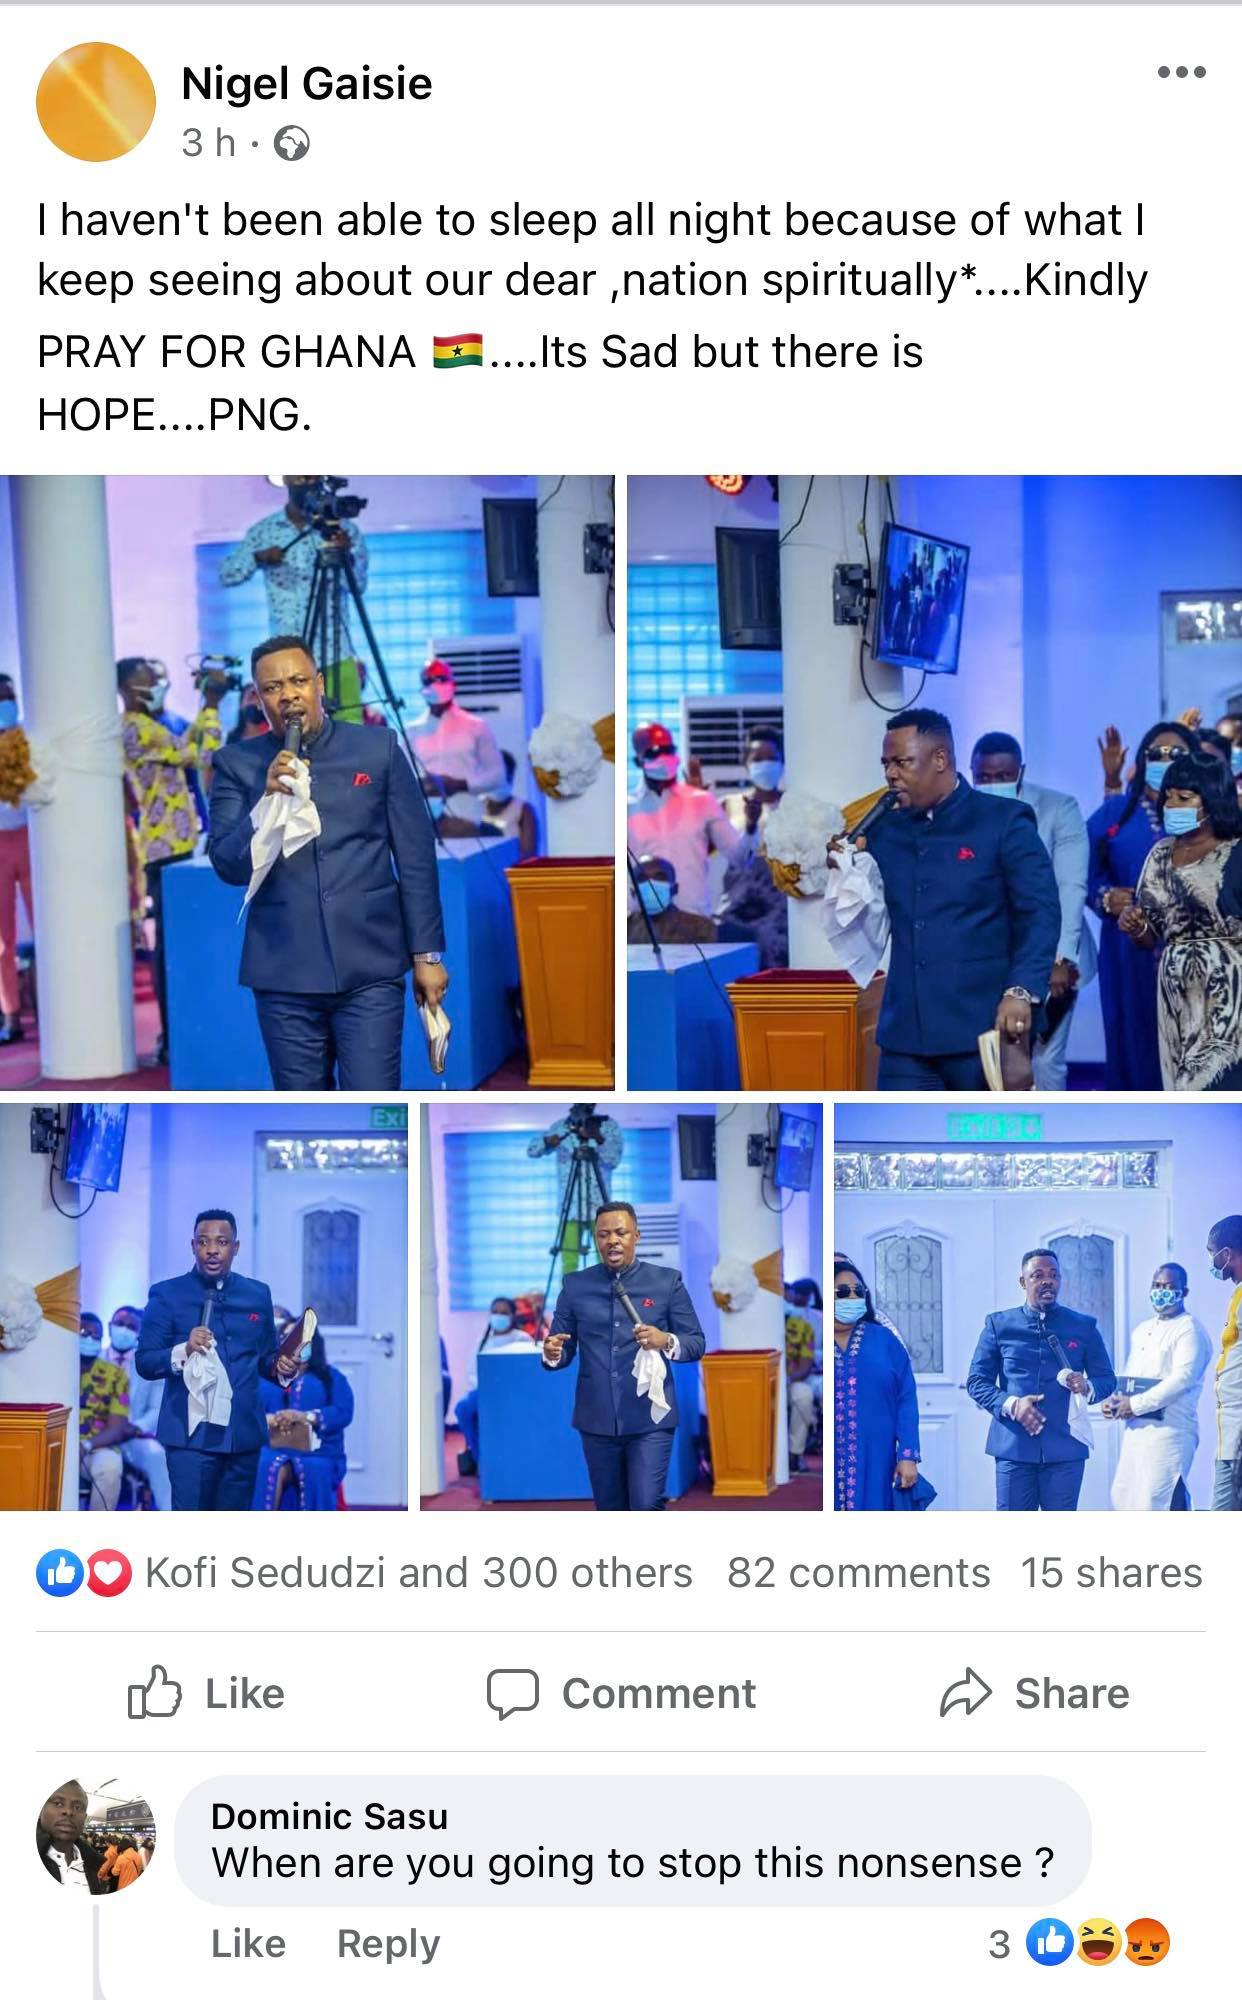 I can't sleep at night due to what i always see about Ghana - Prophet Nigel Gaisie 2